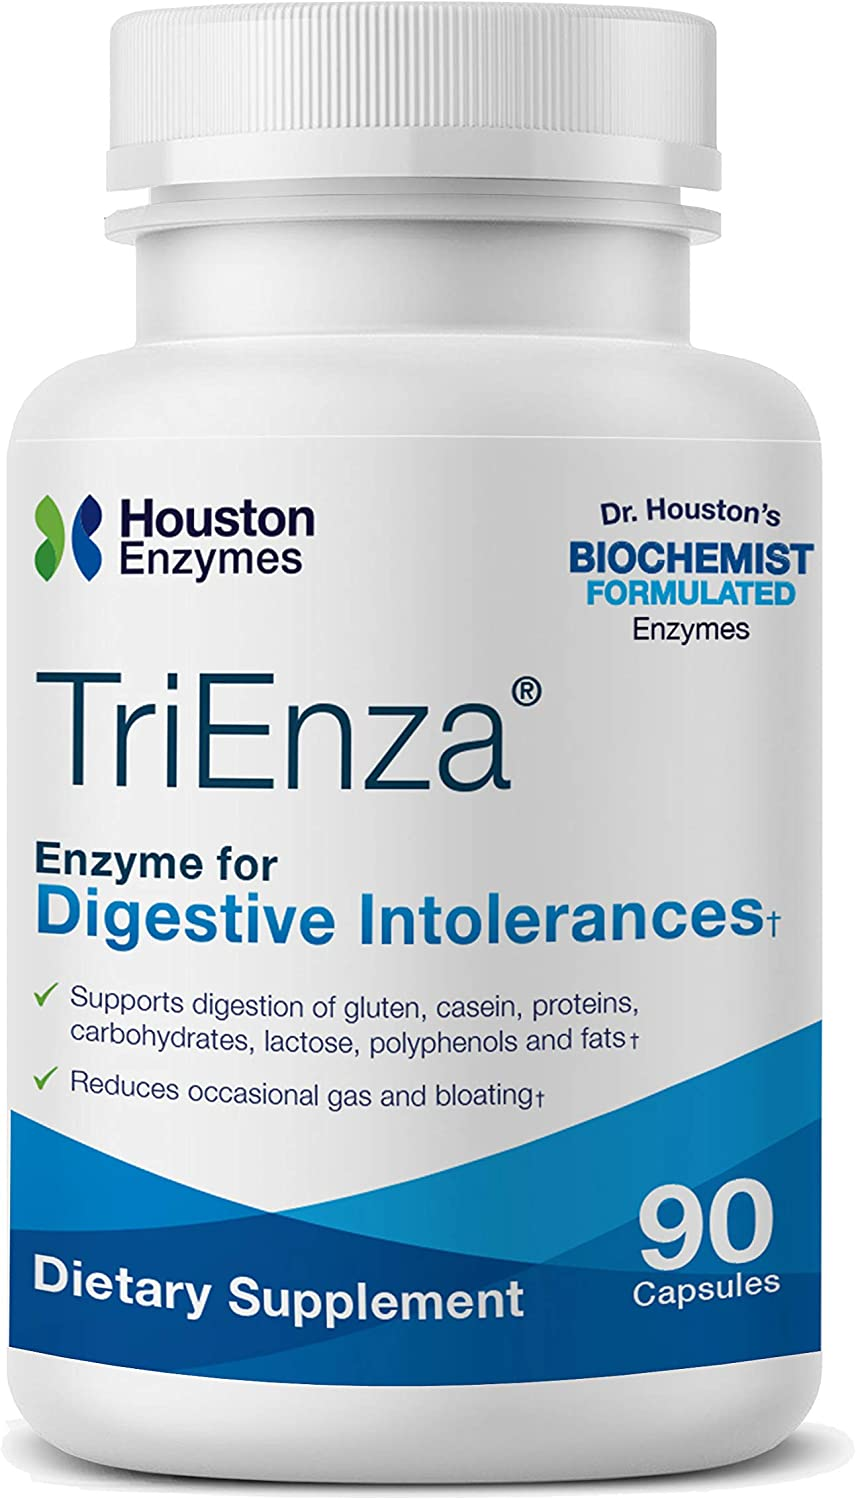 Houston Enzymes TriEnza – 90 Capsules (45 Doses) | Broad-Spectrum Enzymes for Digestive Intolerances | Supports Digestion of Gluten, Casein, Soy, Proteins, Carbohydrates, Sugars, Fats & Polyphenols